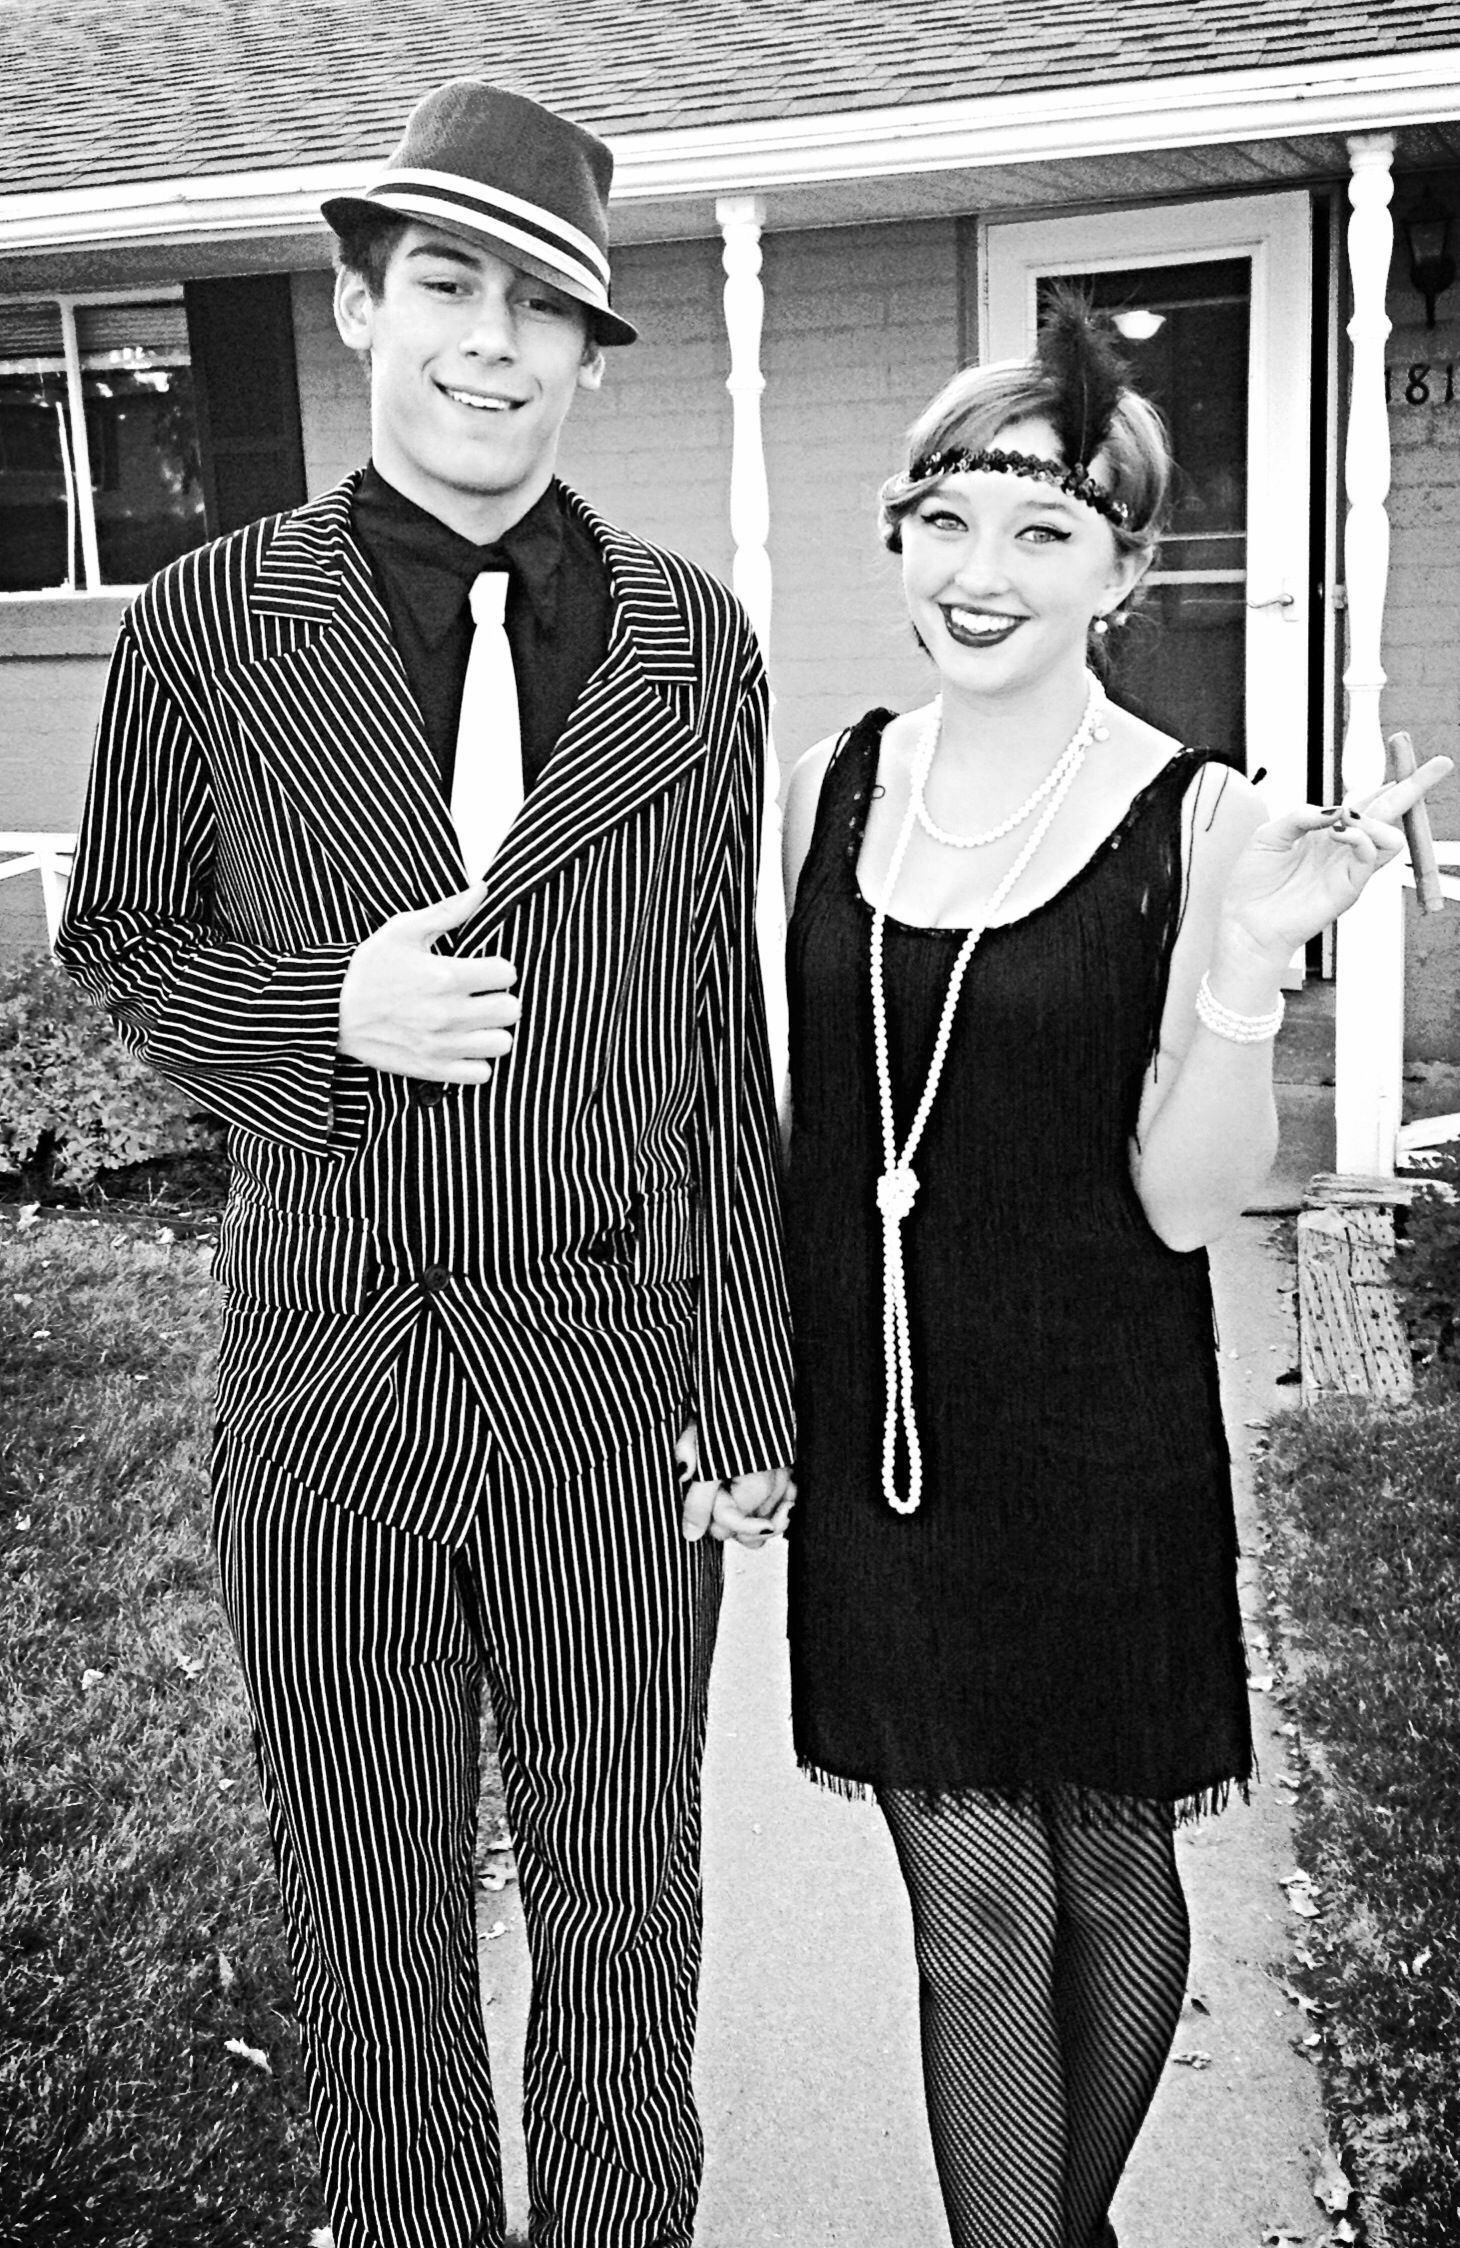 1920's flapper girl and mobster Halloween costumes | 1920s ...